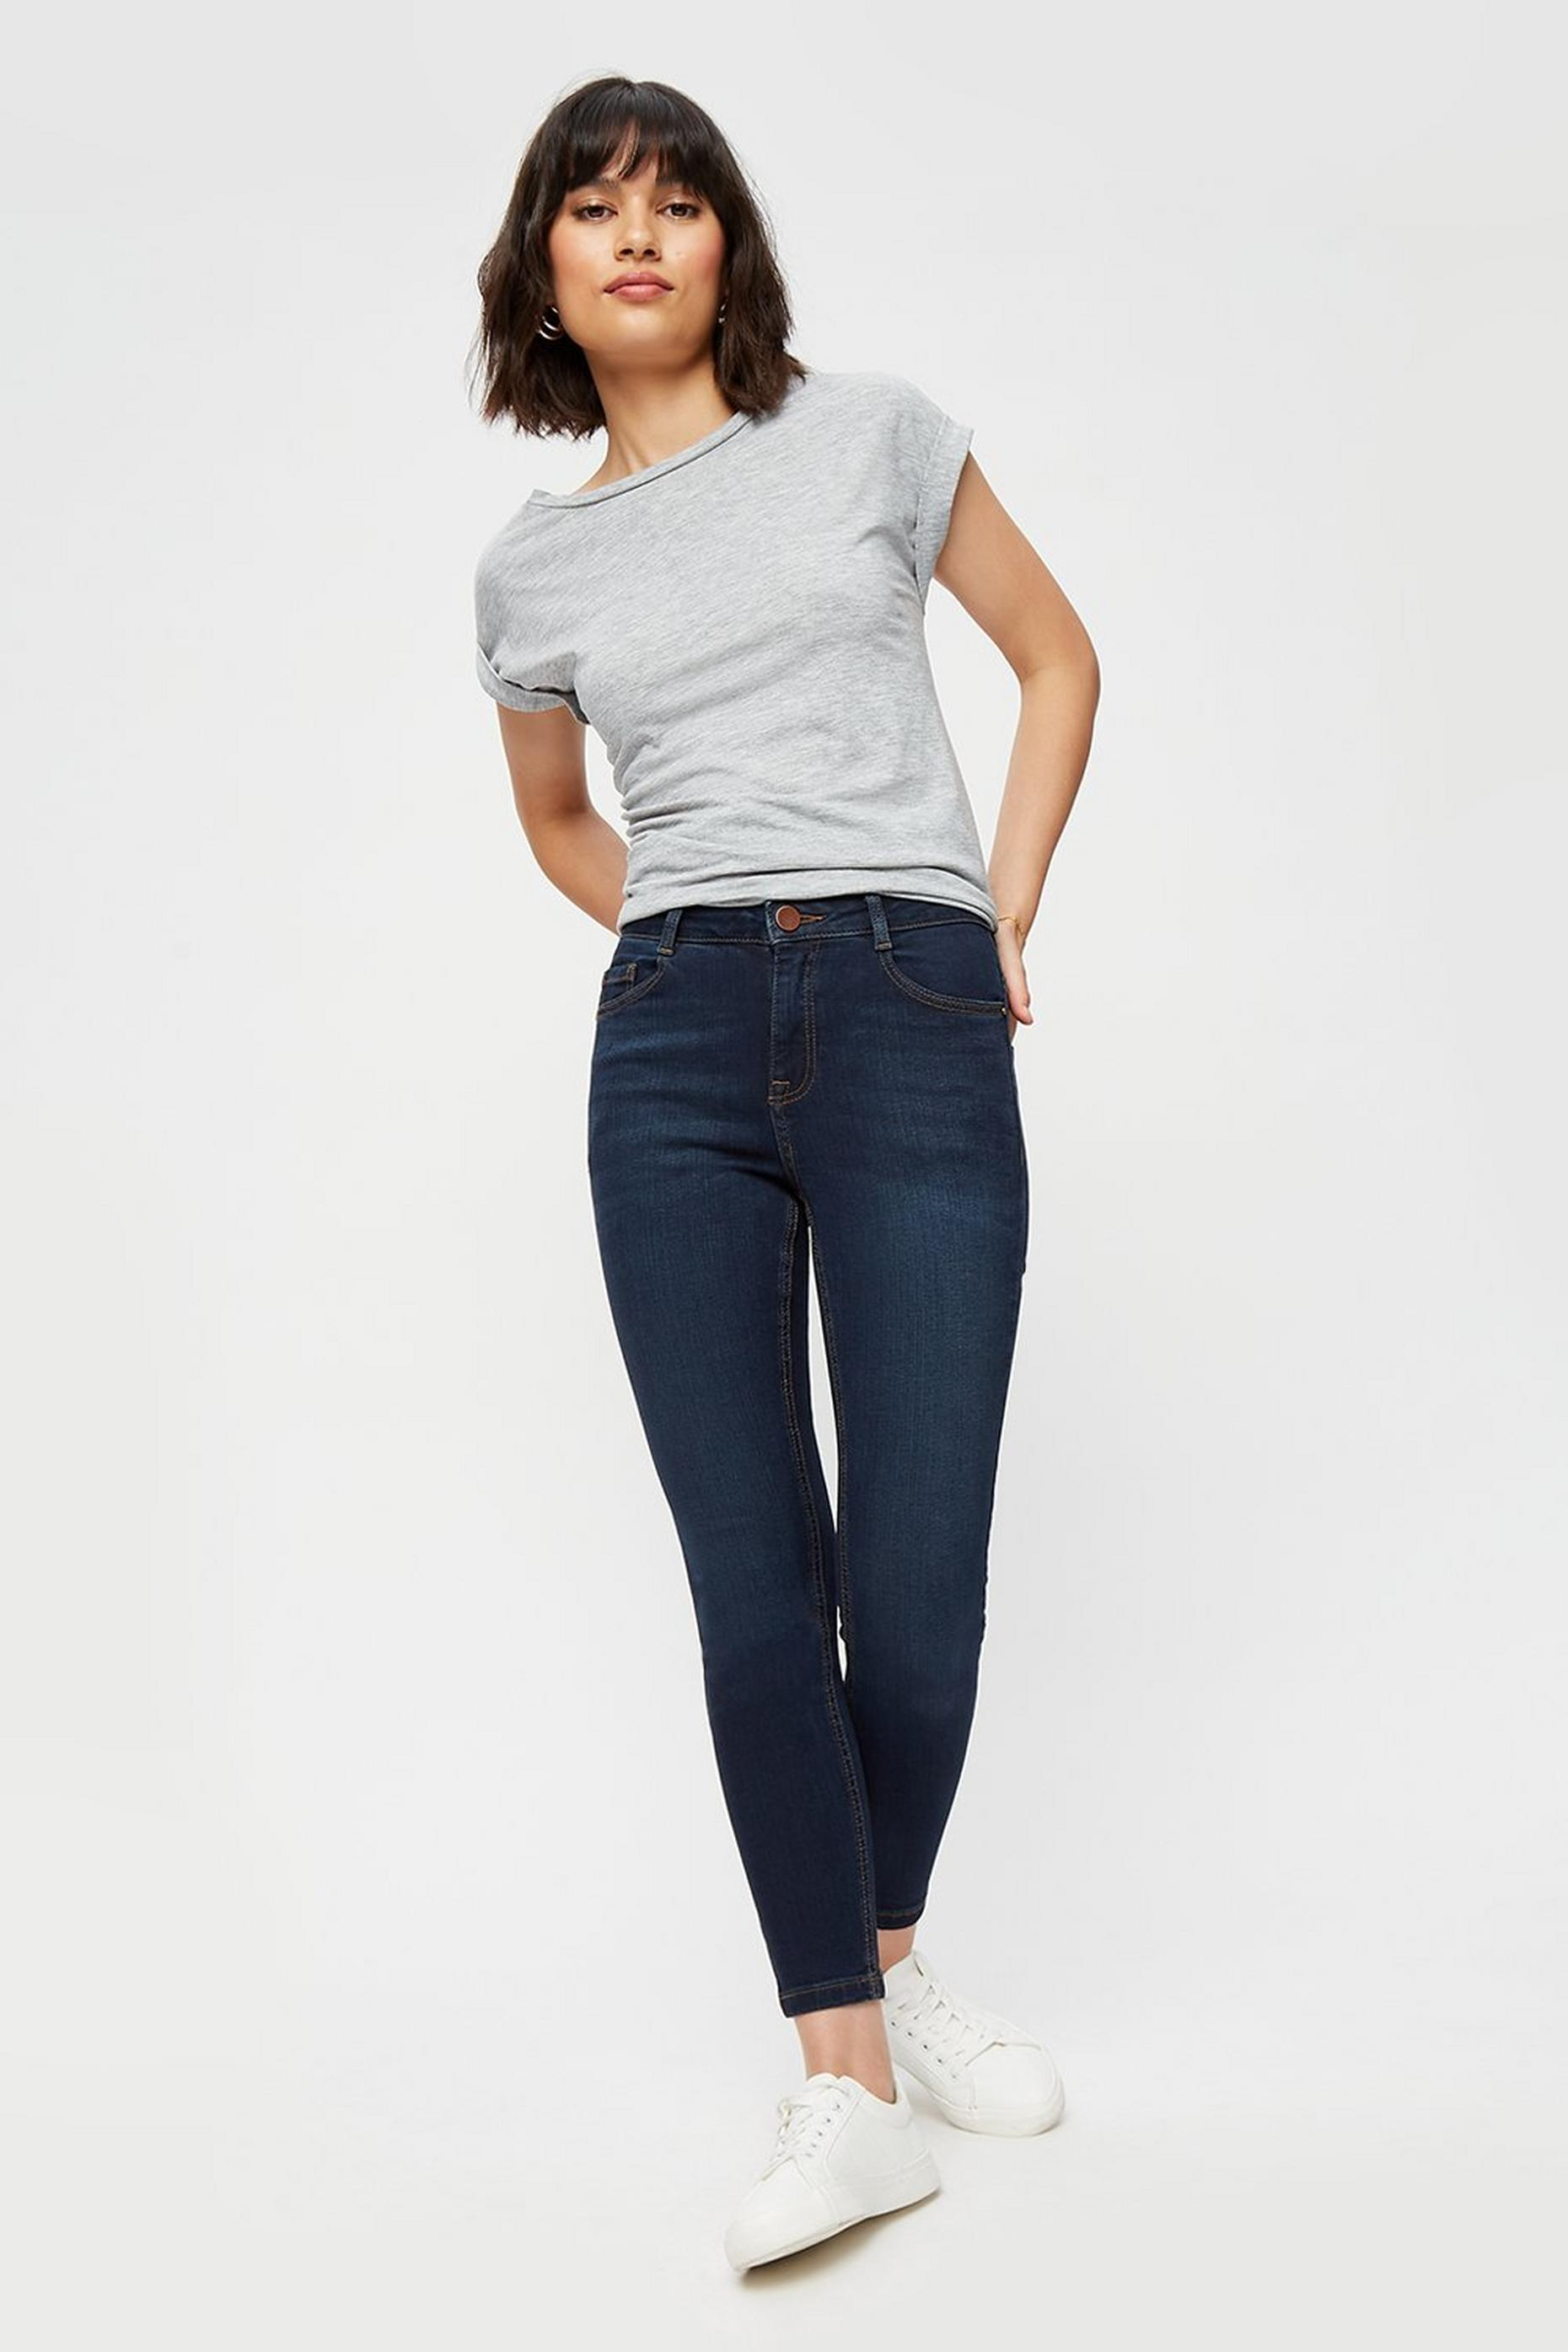 Petite Indigo Shape and Lift Jeans